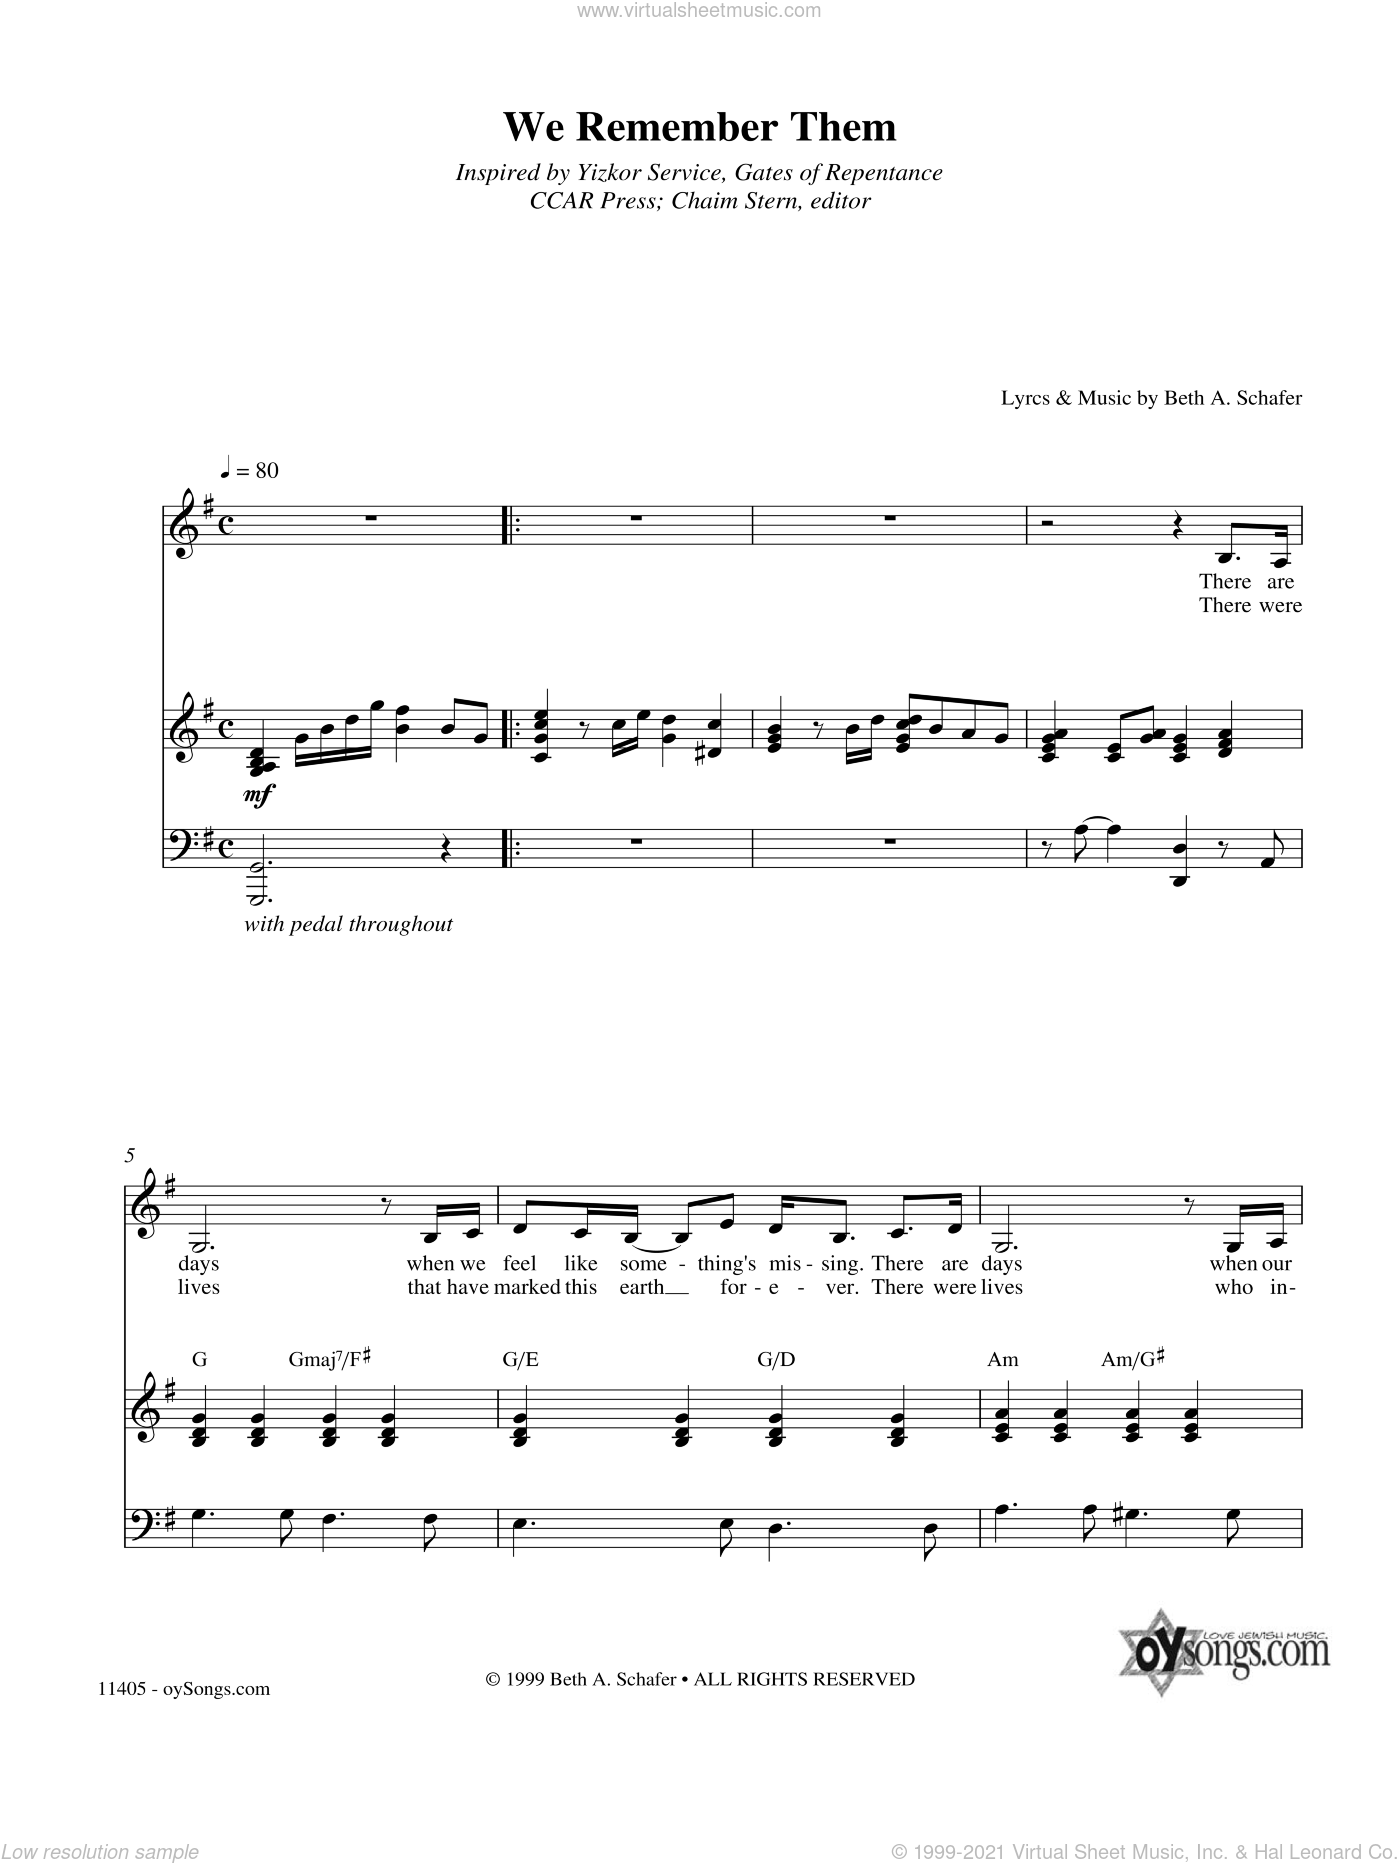 We Remember Them sheet music for voice, piano or guitar by Beth Schafer